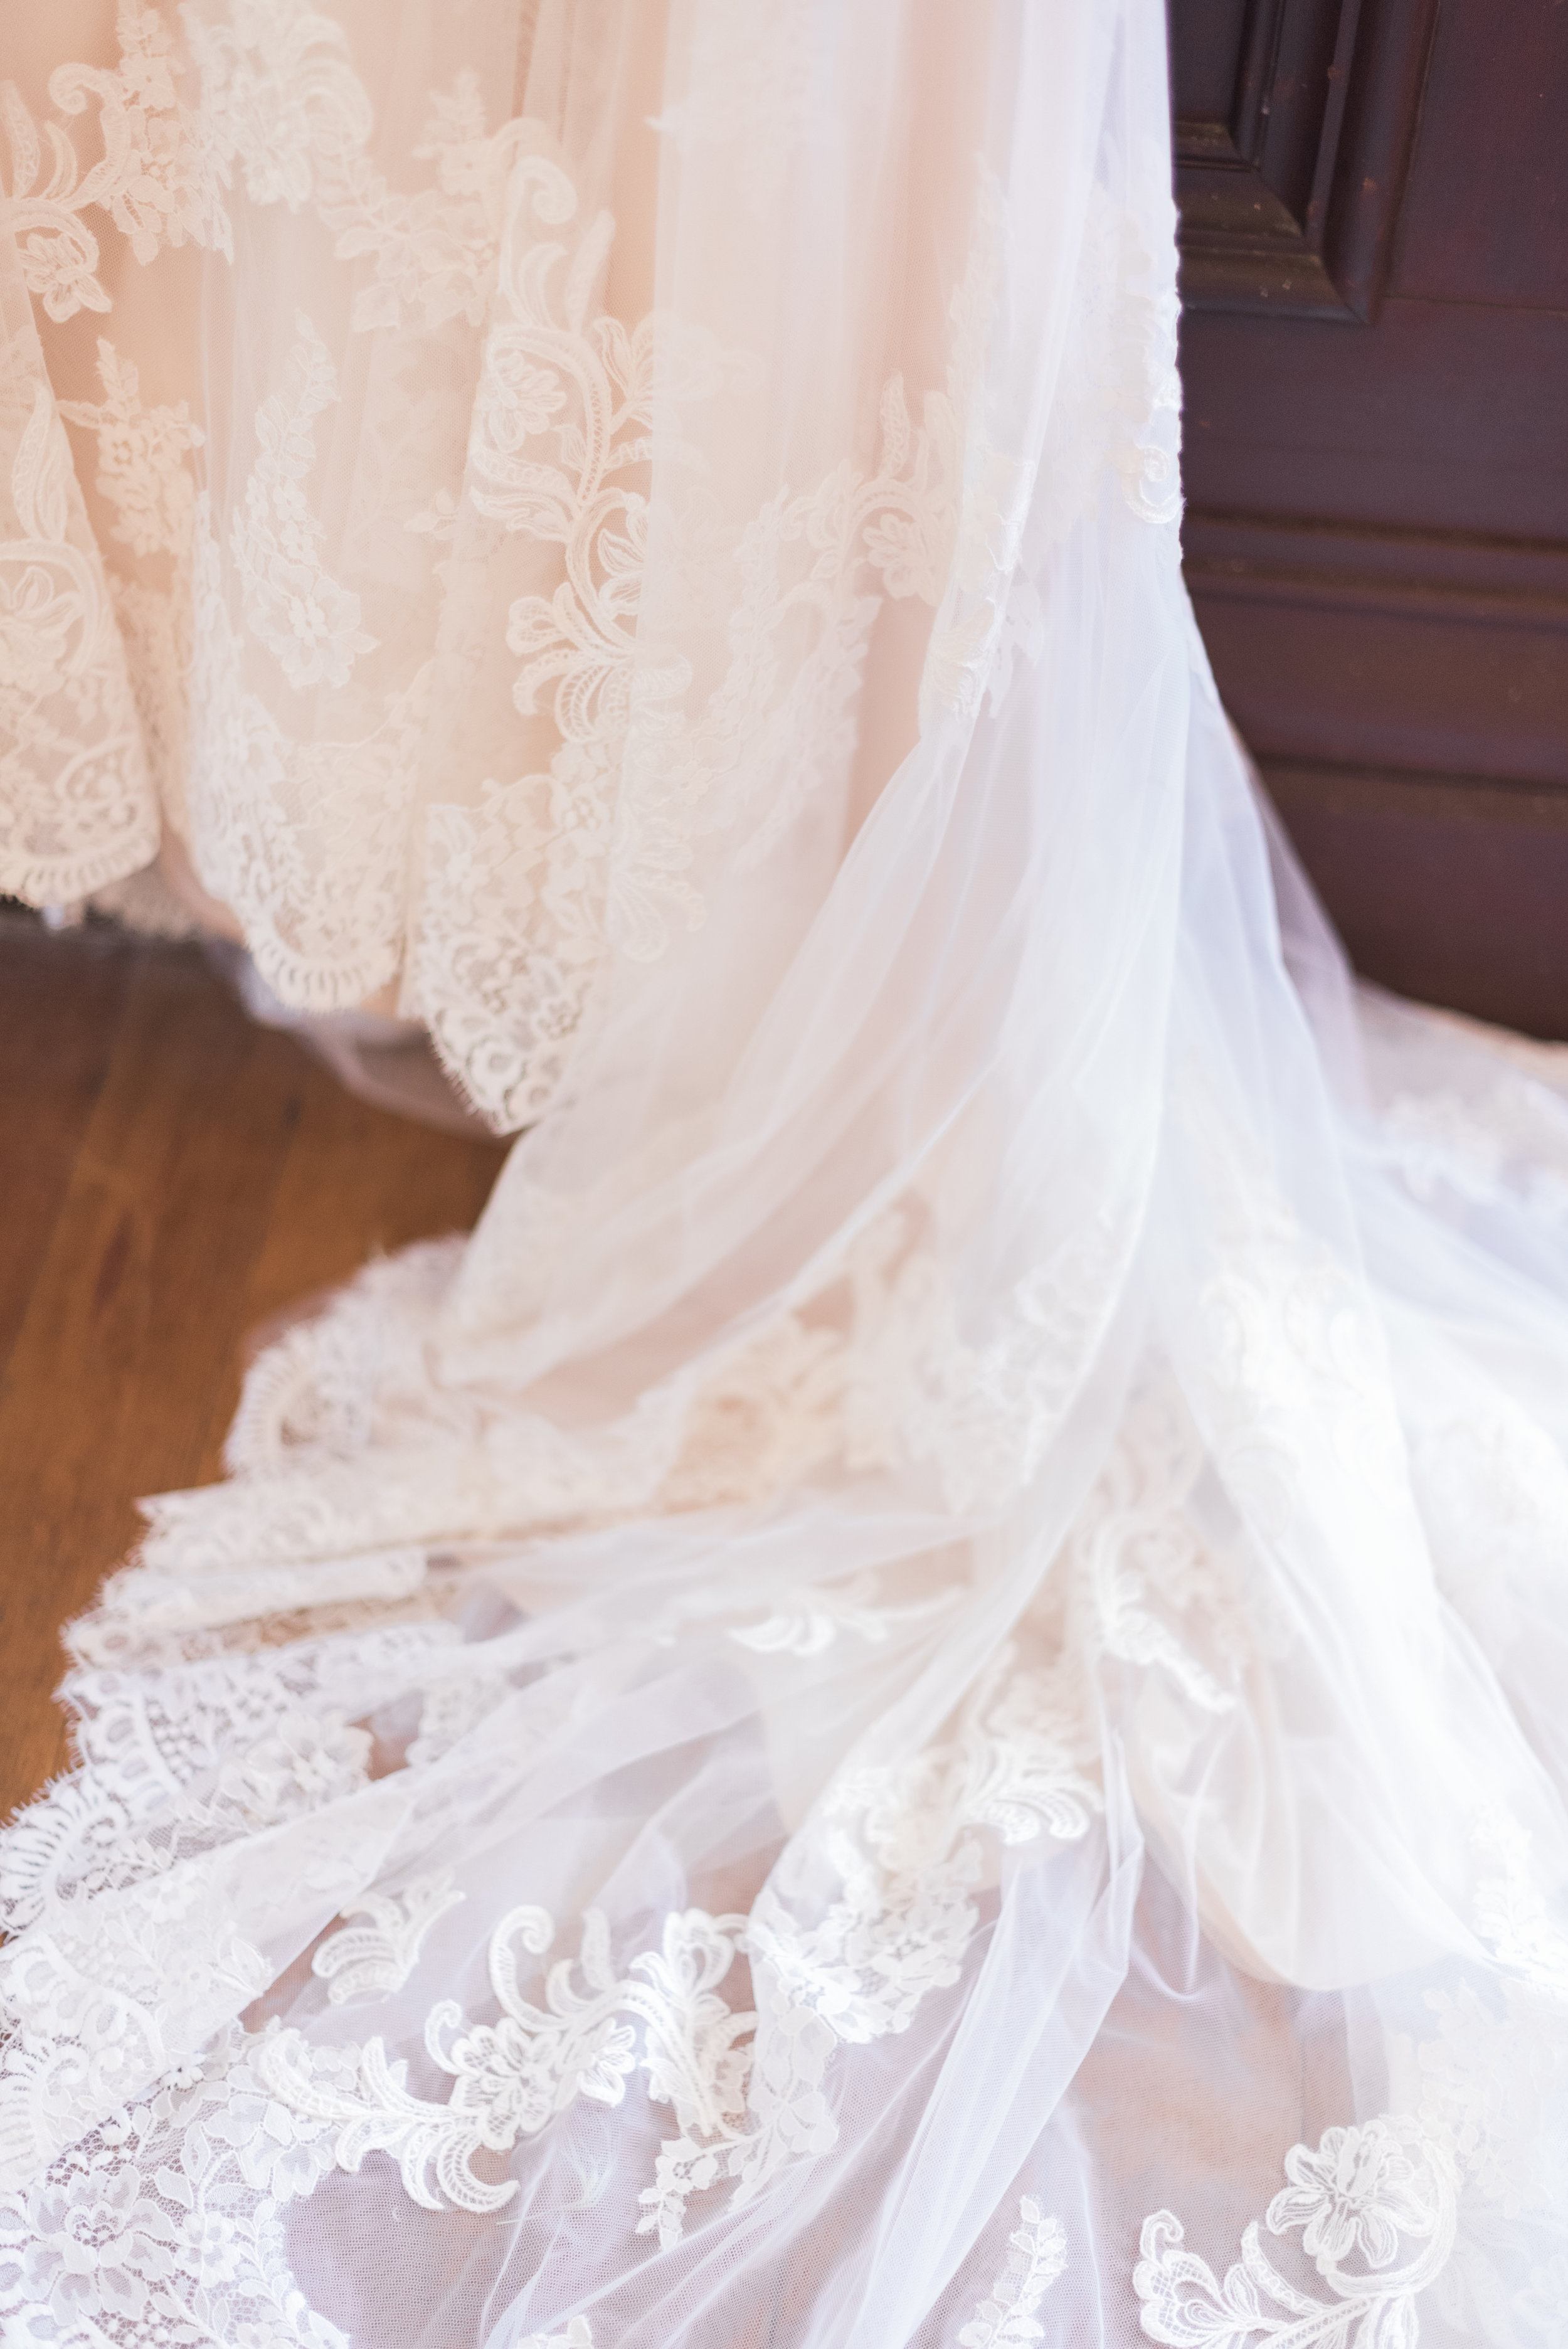 wedding-gown-lace-details.jpg